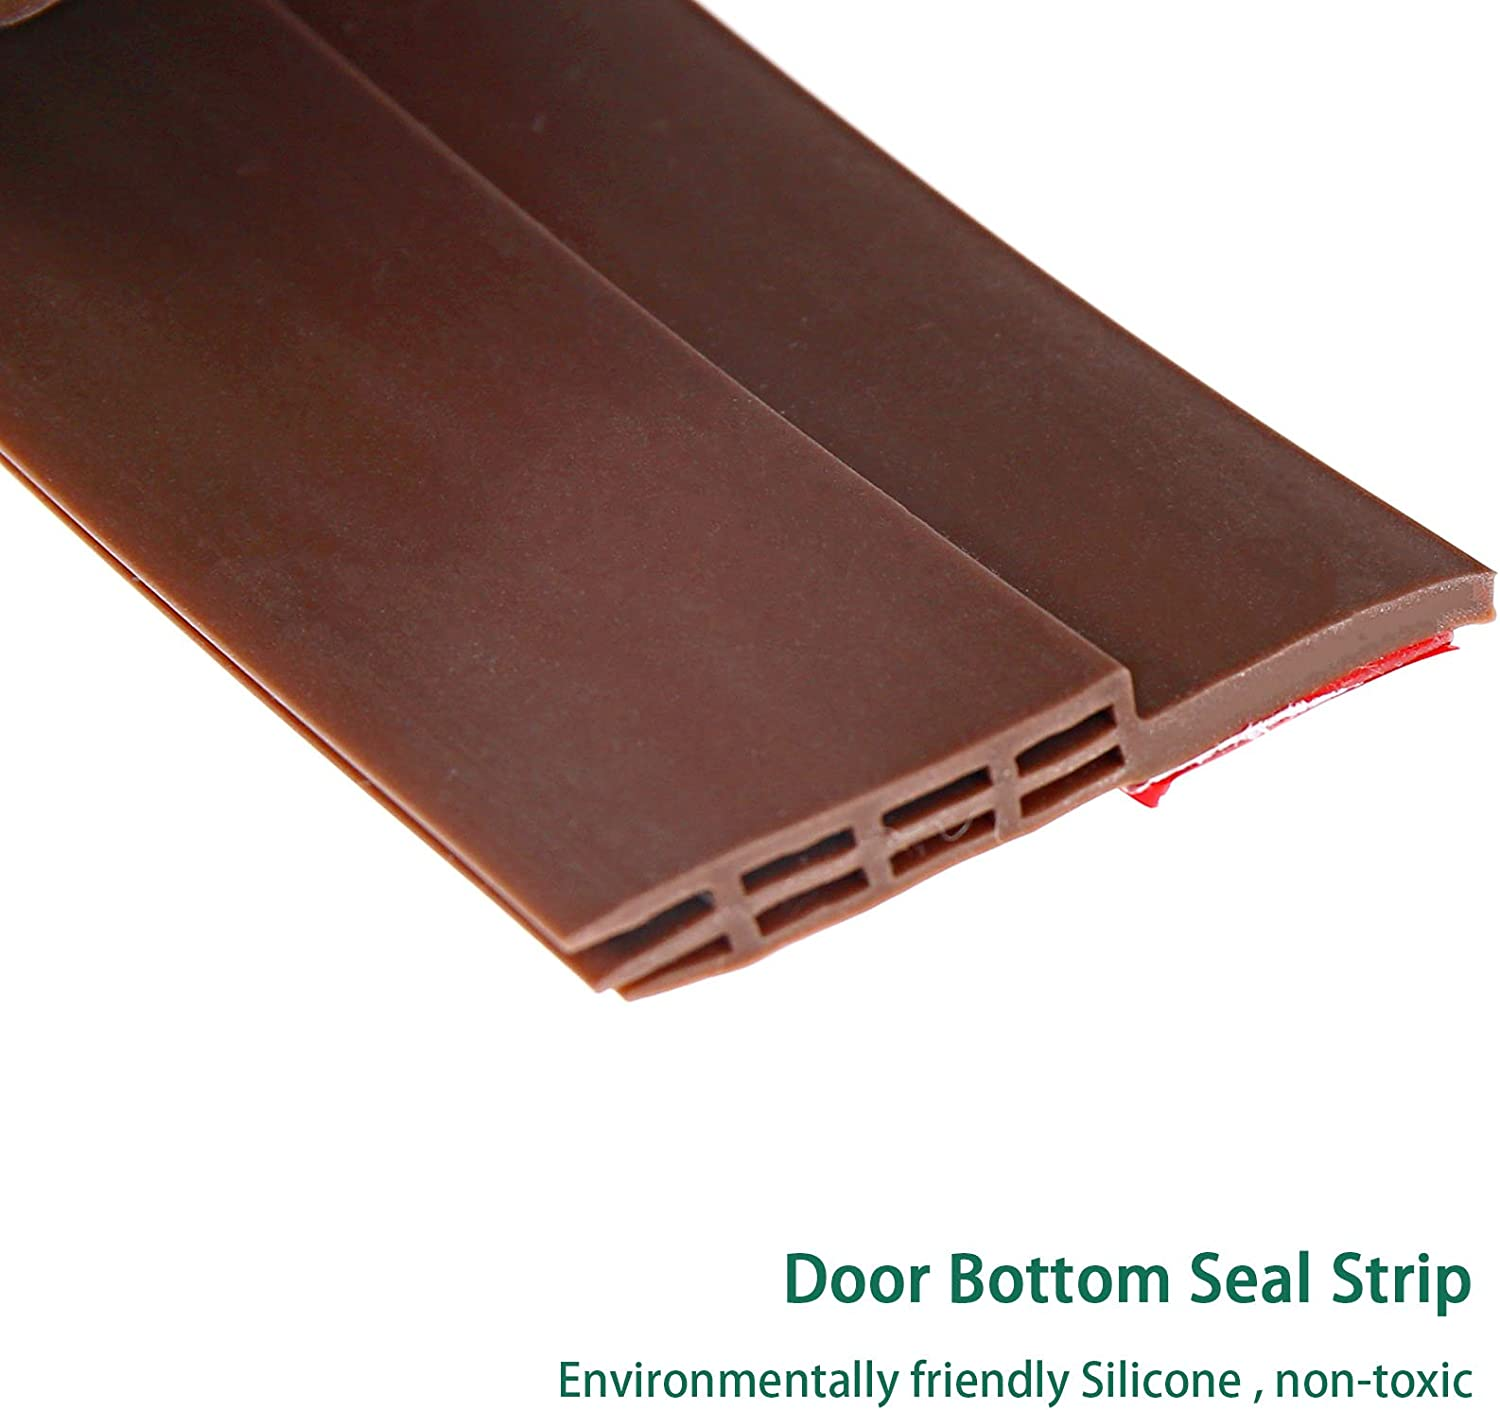 SING F LTD Door Draught Excluder Self Adhesive Weather Stripping Door Bottom Seal Strip 2 Inch X 39 Inch White